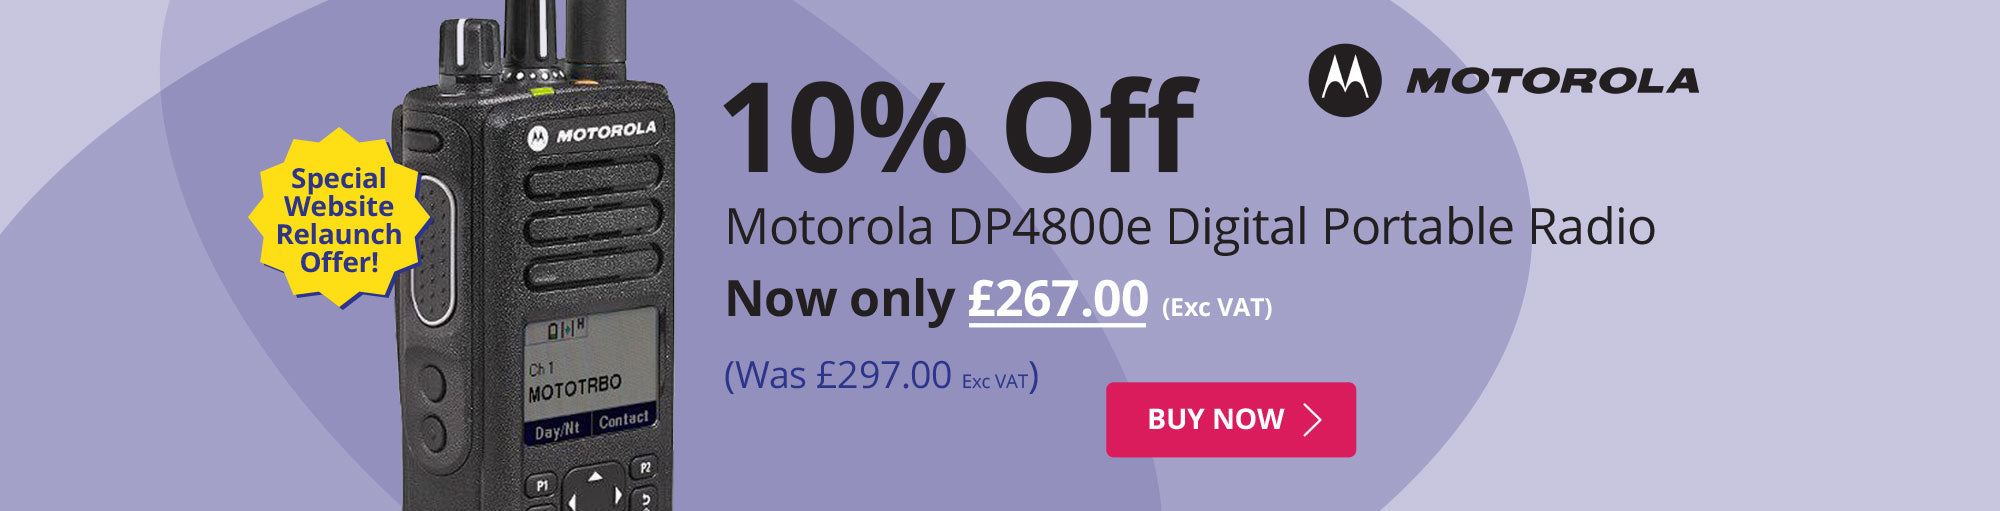 10% Off Motorola DP4400e Digital Portable Radio